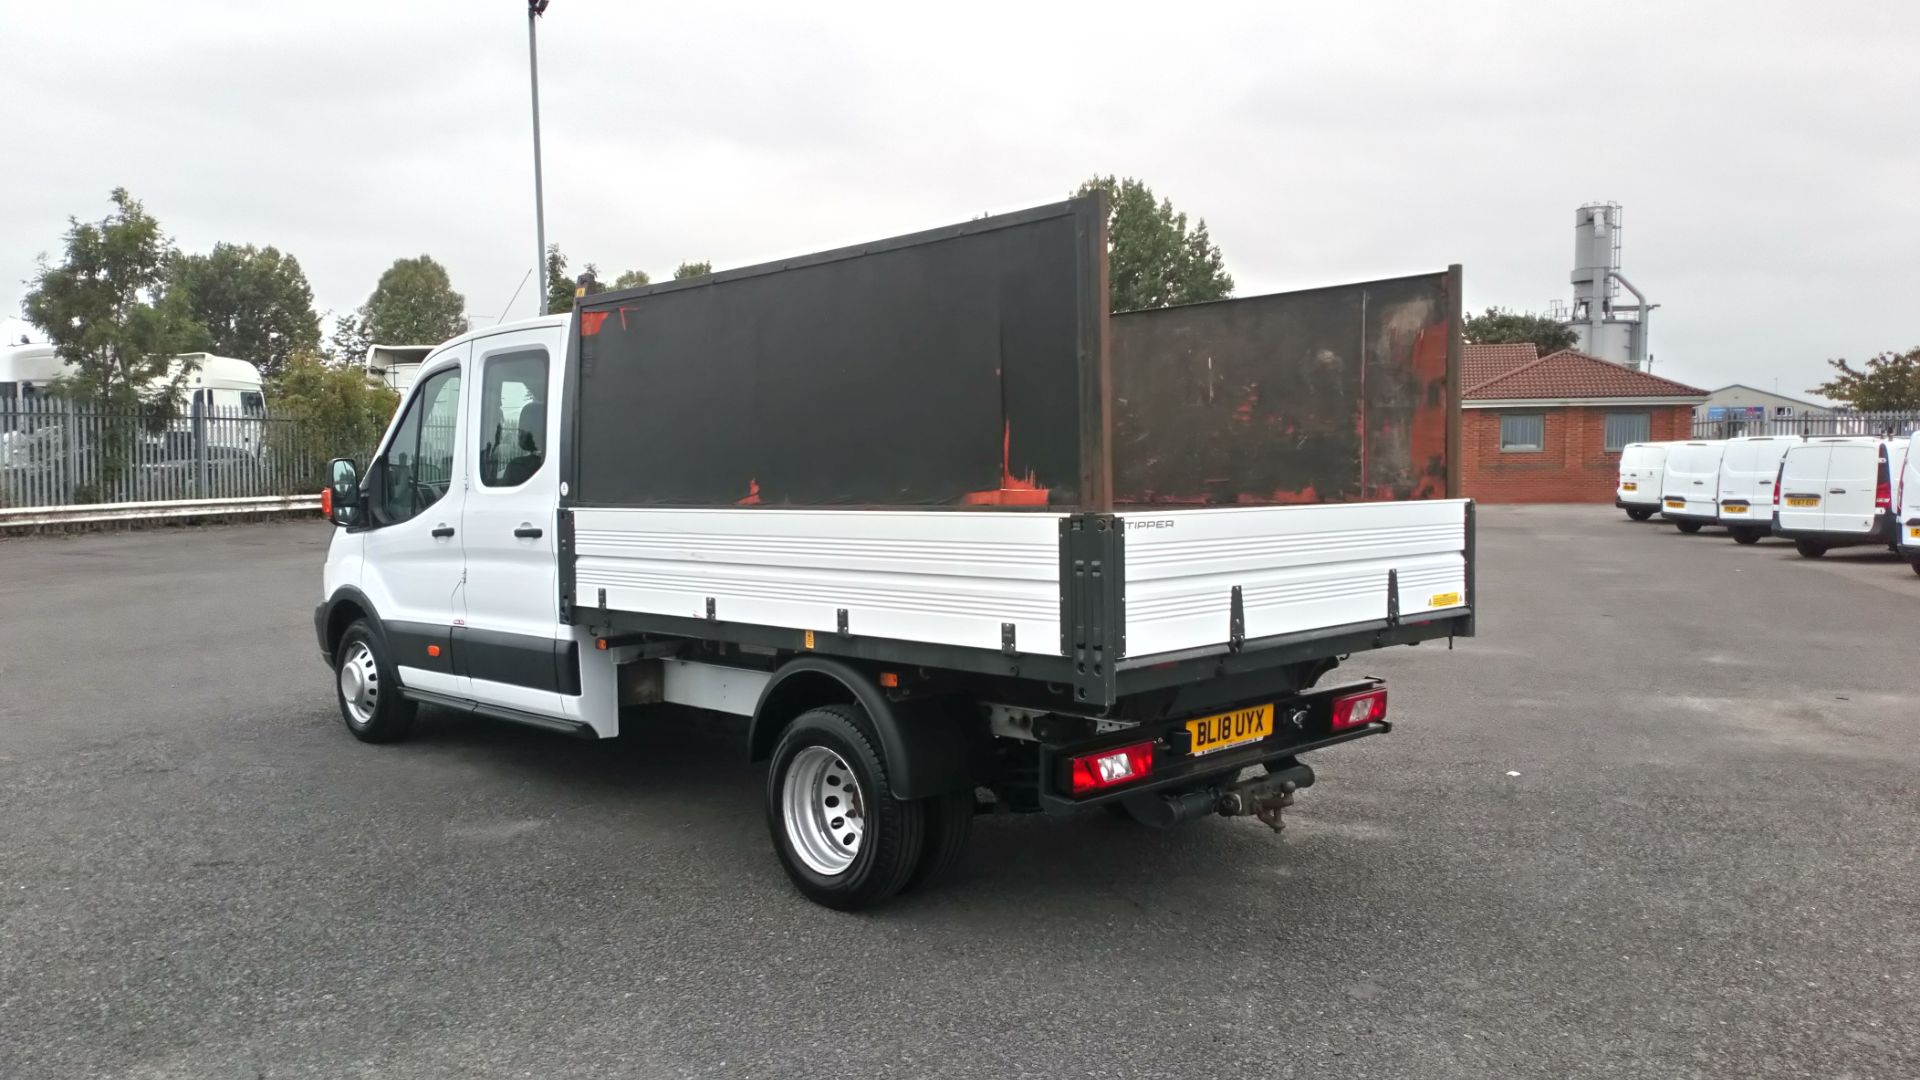 2018 Ford Transit 2.0 Tdci 130Ps H2 Double Cab Tipper (BL18UYX) Image 5